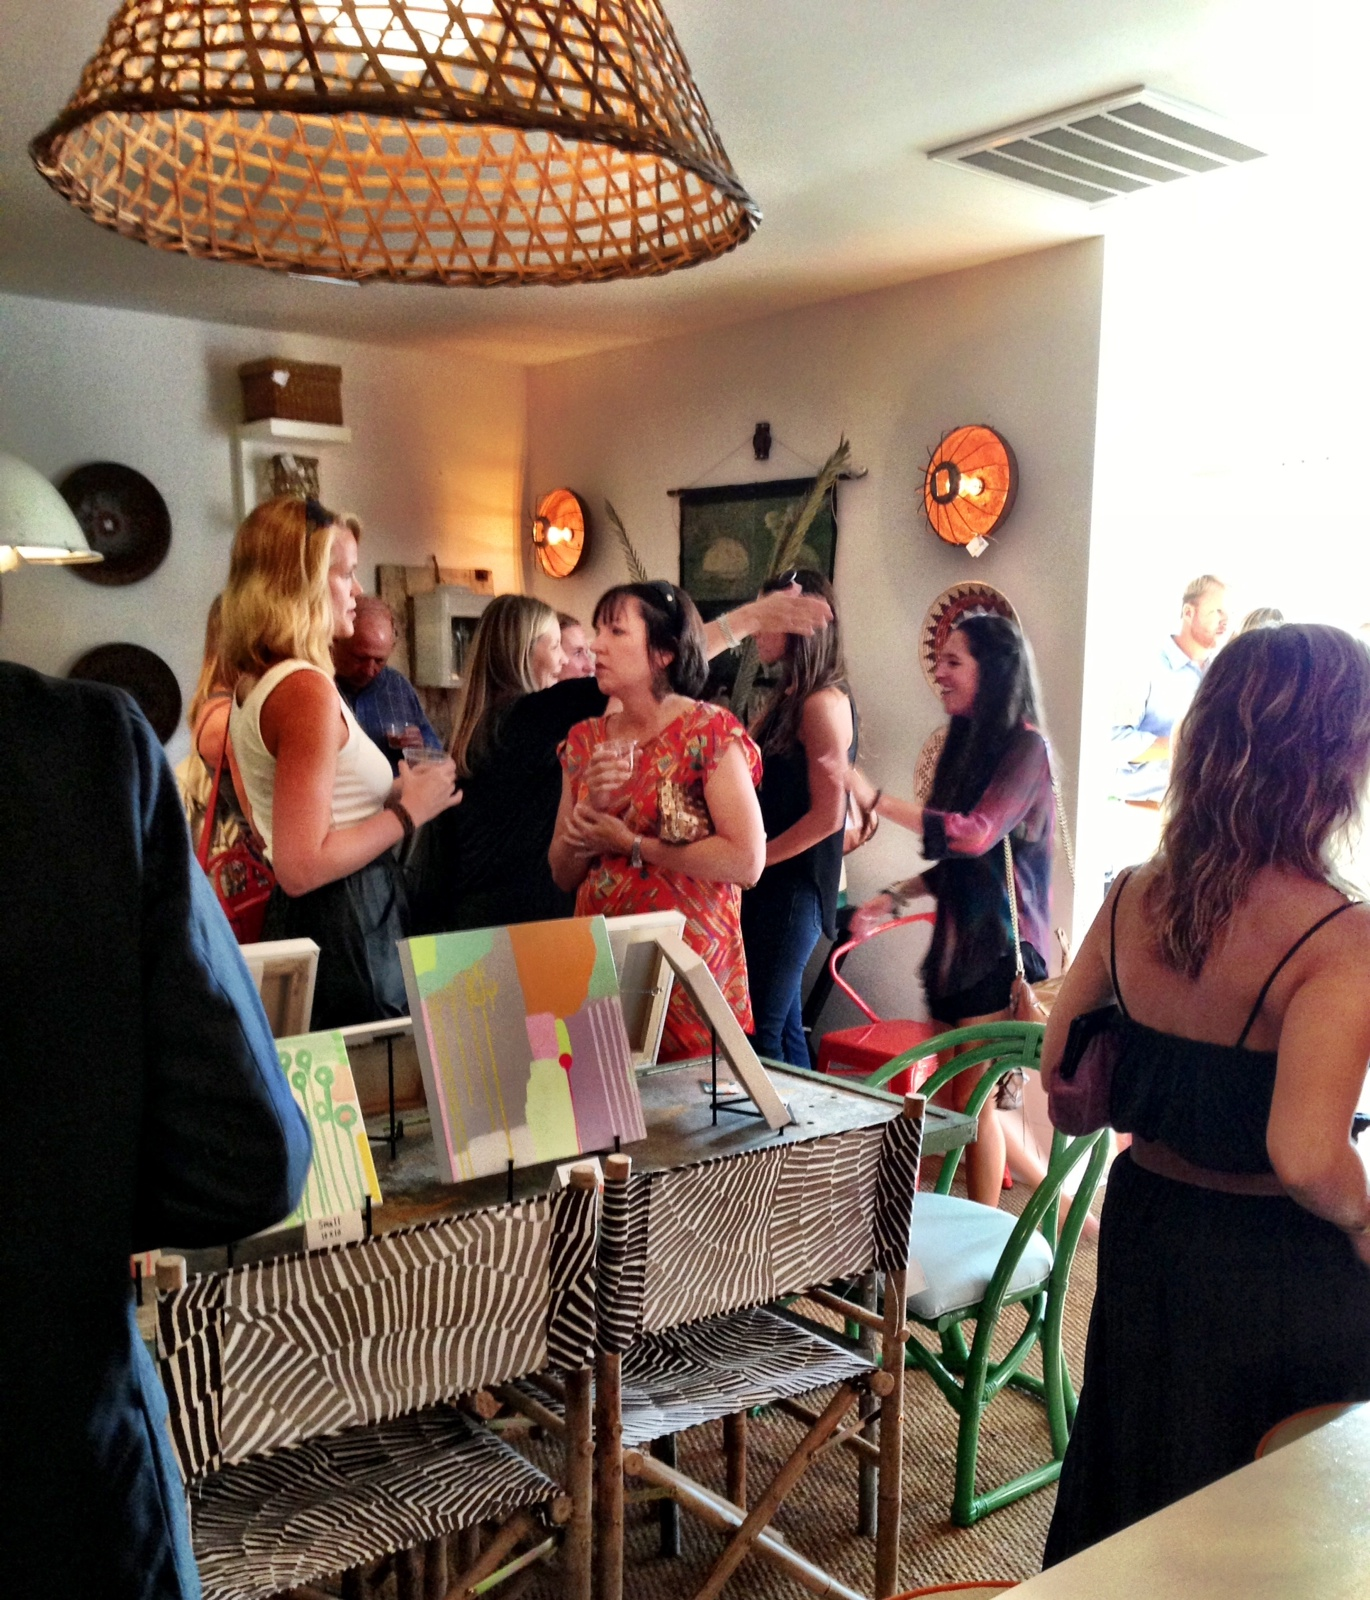 Eclectic interior design group is a full service design firm based in